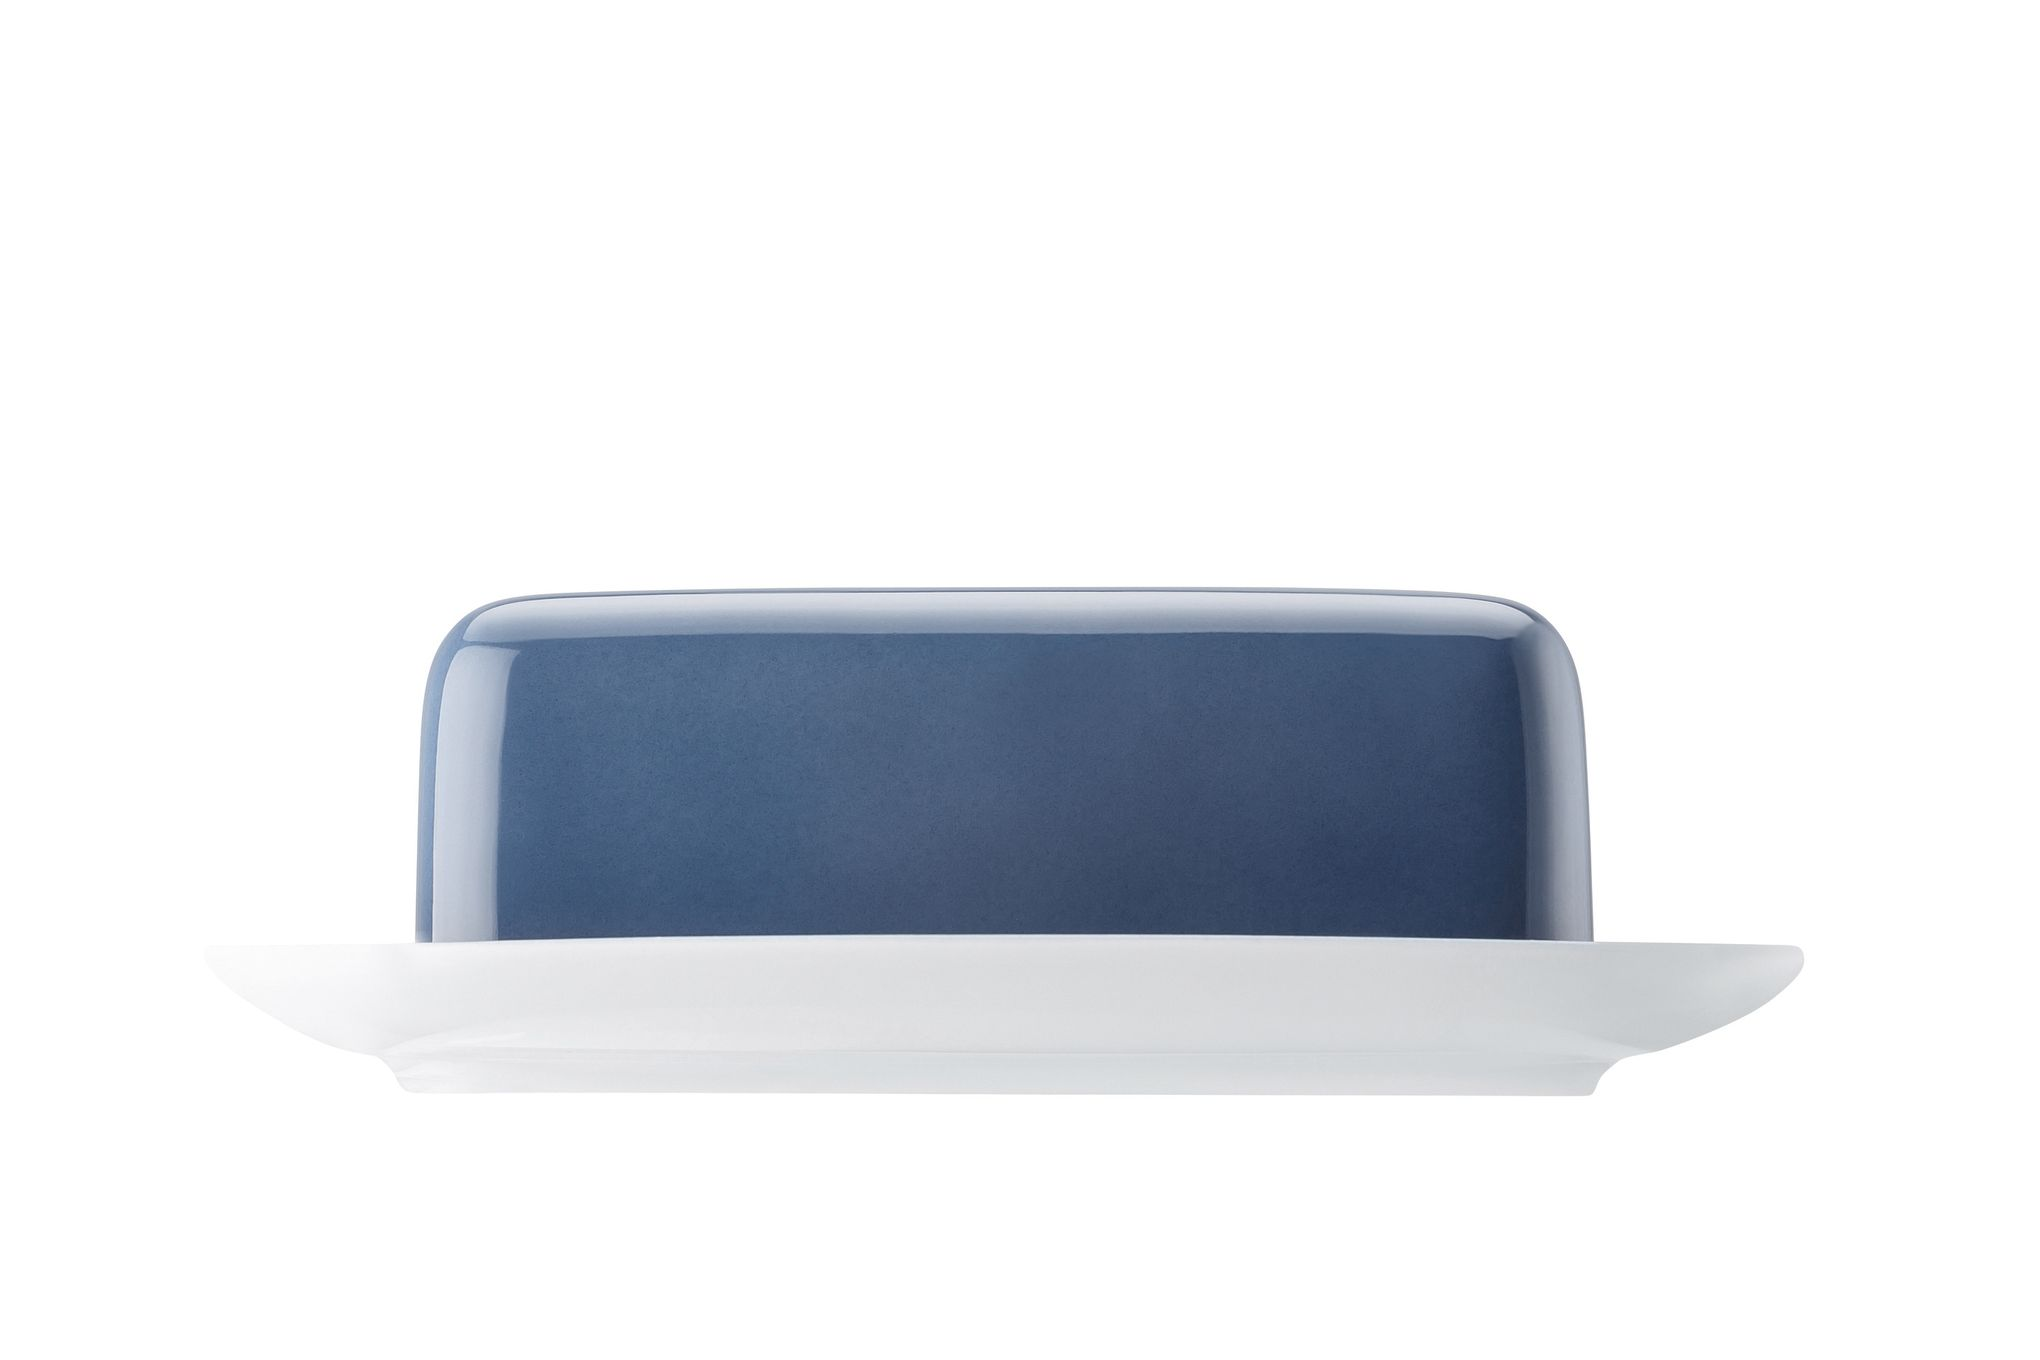 Thomas Sunny Day - Nordic Blue Butter Dish + Lid thumb 1